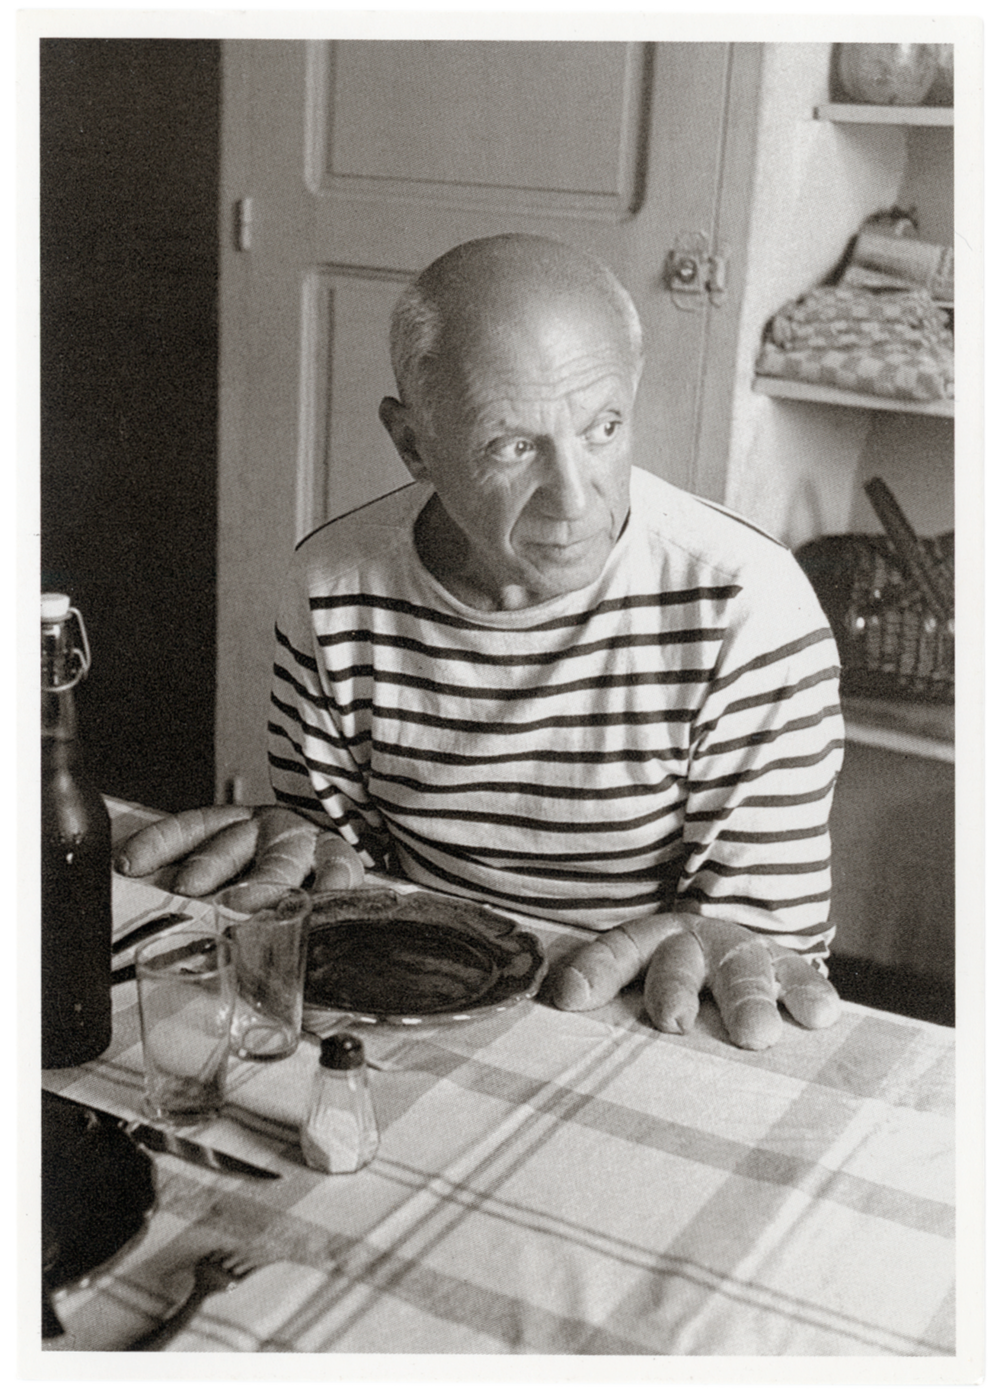 Picasso and the Loaves , Robert Doisneau, 1952 Aix-en-Provence, France